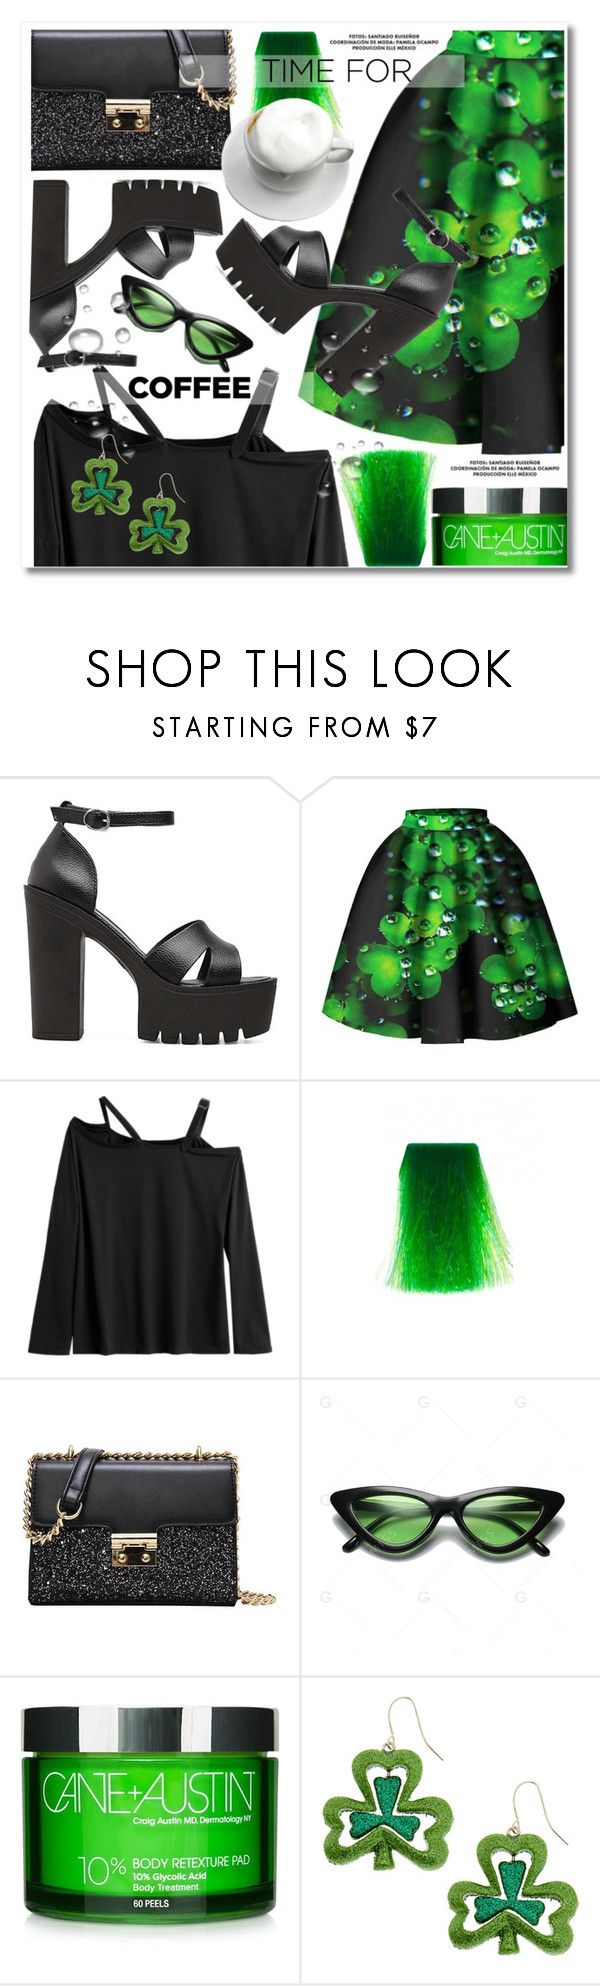 """Buzz-Worthy: Coffee Date"" by paculi ❤ liked on Polyvore featuring Manic Panic NYC, Cane + Austin, black, GREEN, skirts and CoffeeDate"